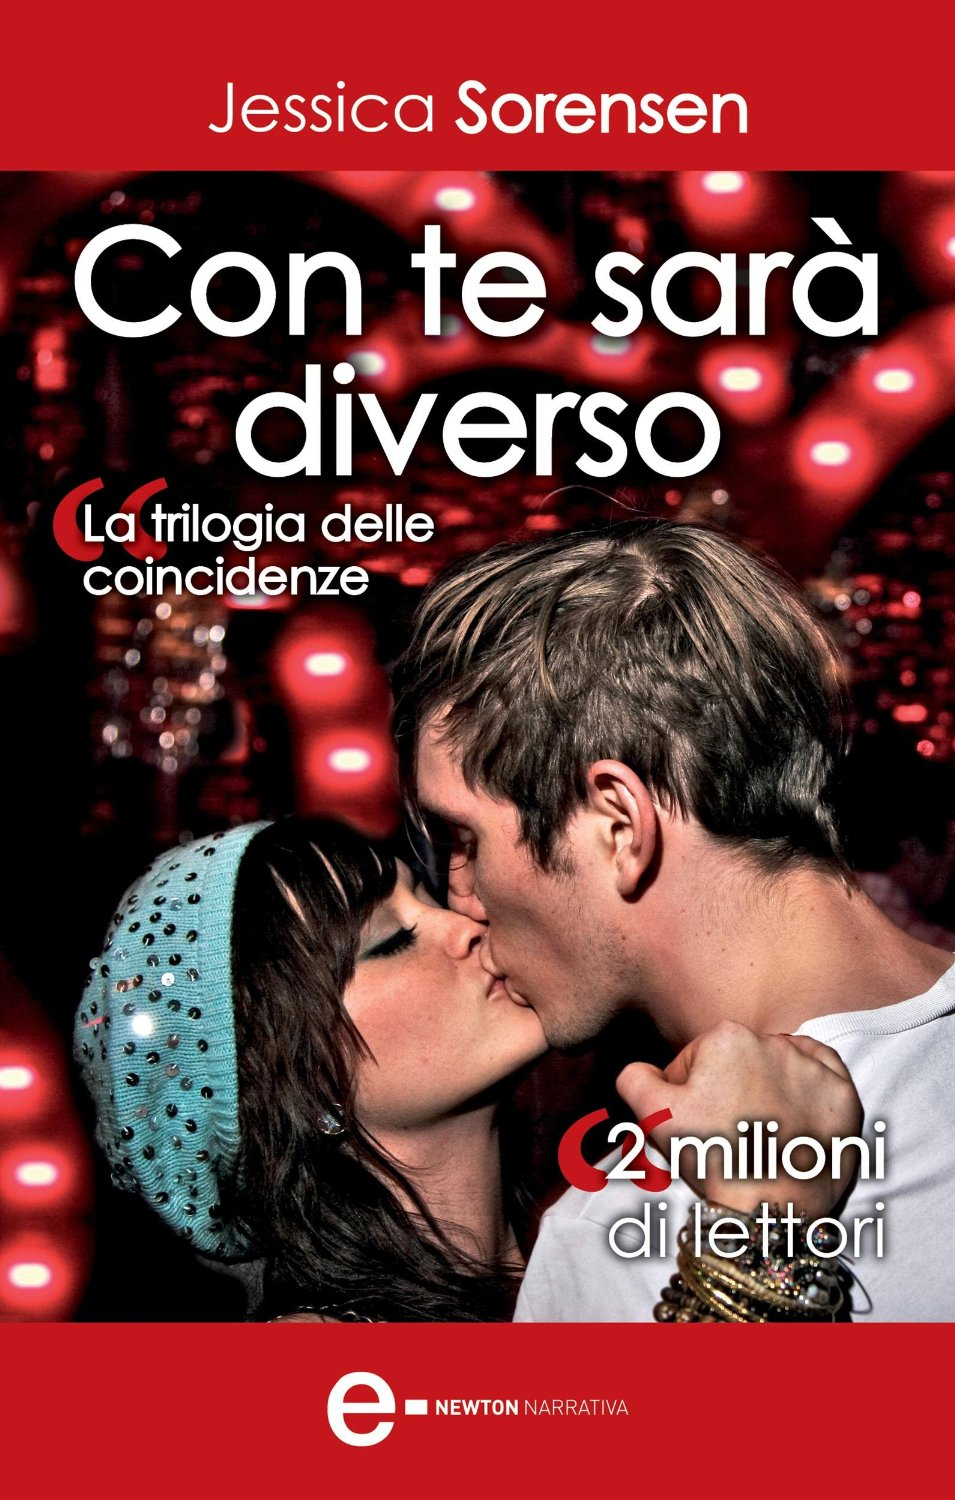 http://booksinthestarrynight.blogspot.it/2014/09/doppia-recensione-con-te-sara-diverso.html